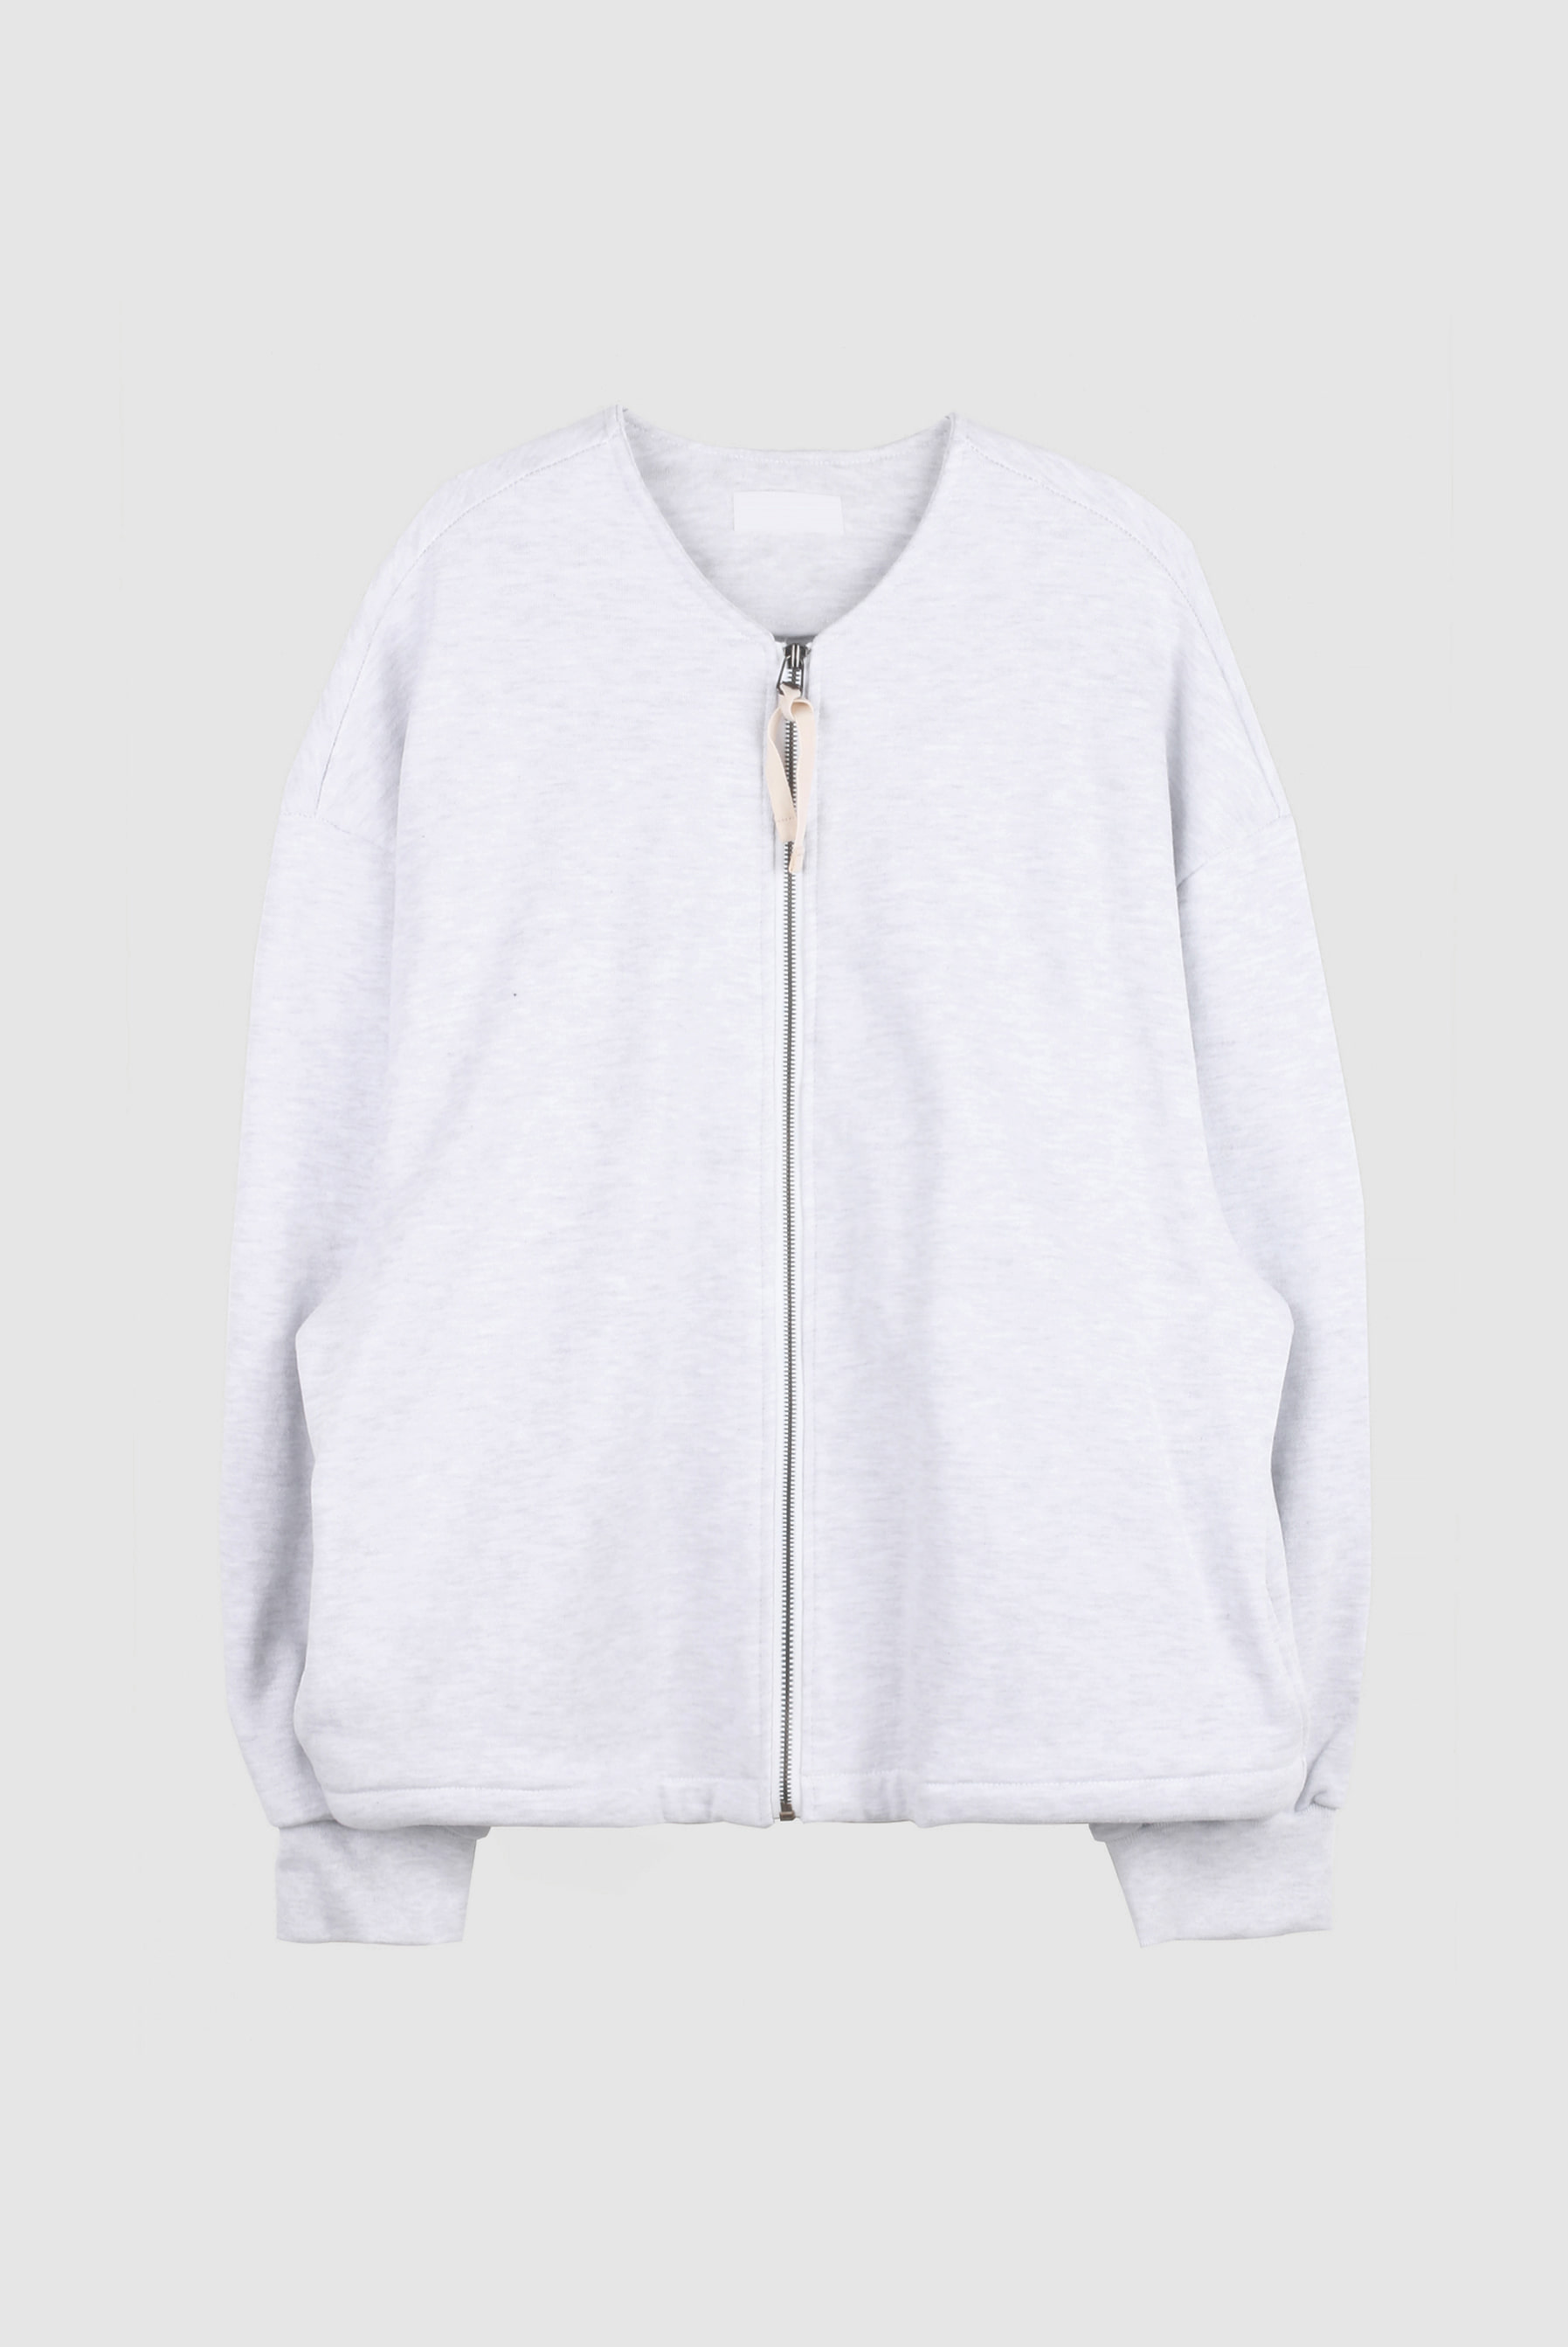 Heavy_Cotton Round Zip-up